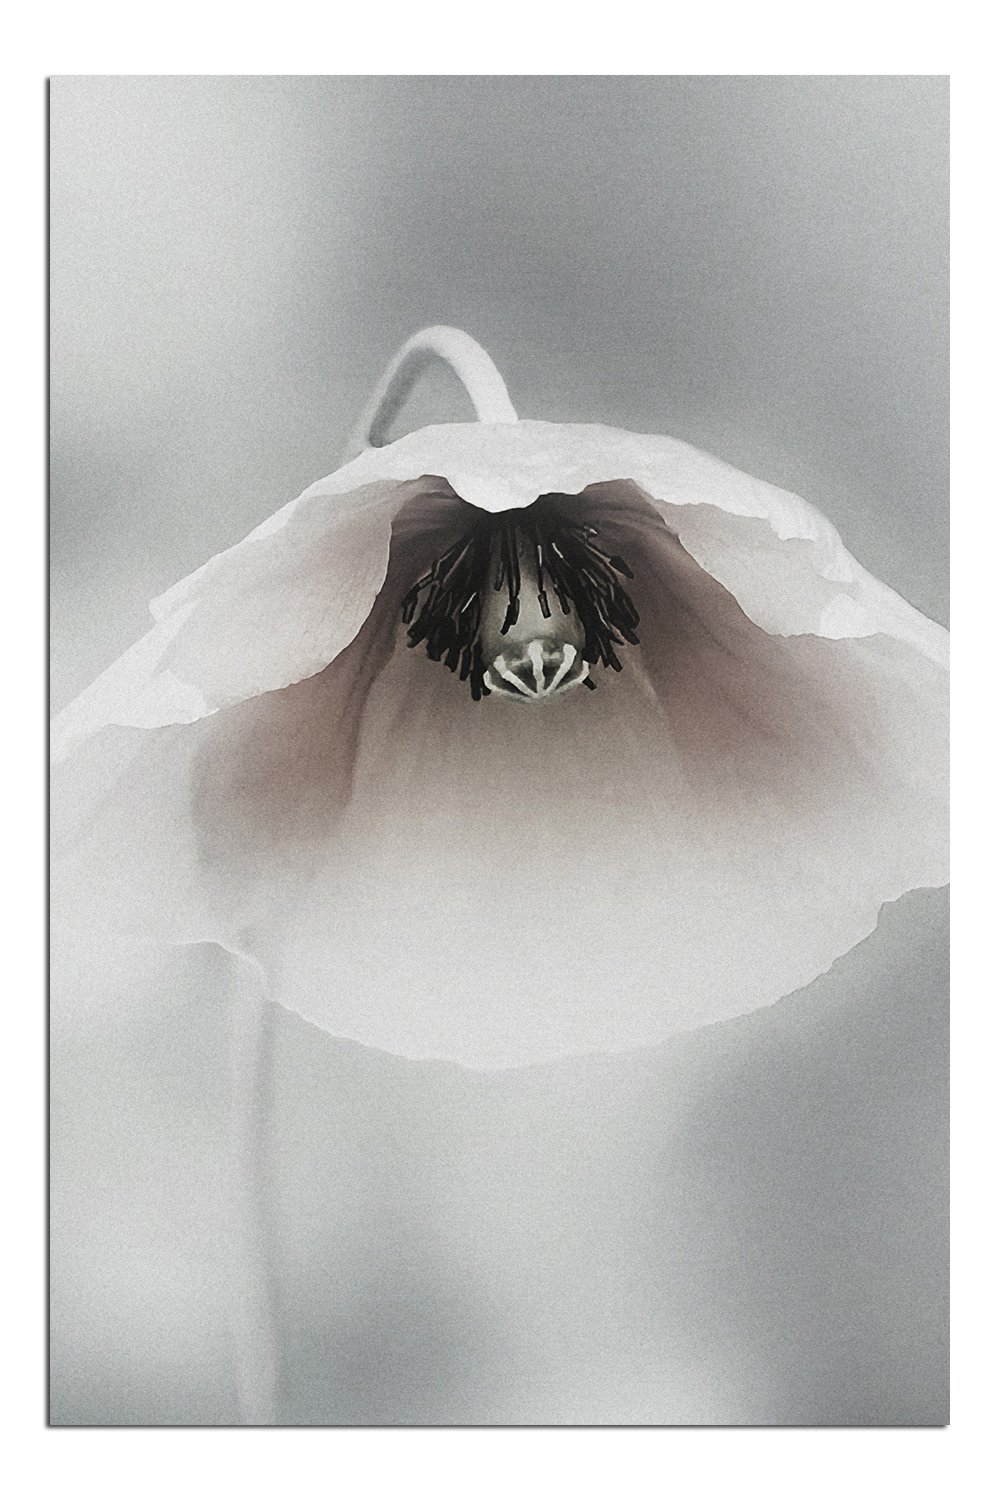 JP London Solvent Free Print PAPM1X57318 Ephemeral Beauty Fragile White Poppy Flower Mono Ready to Frame Poster Wall Art 36 h by 24 w